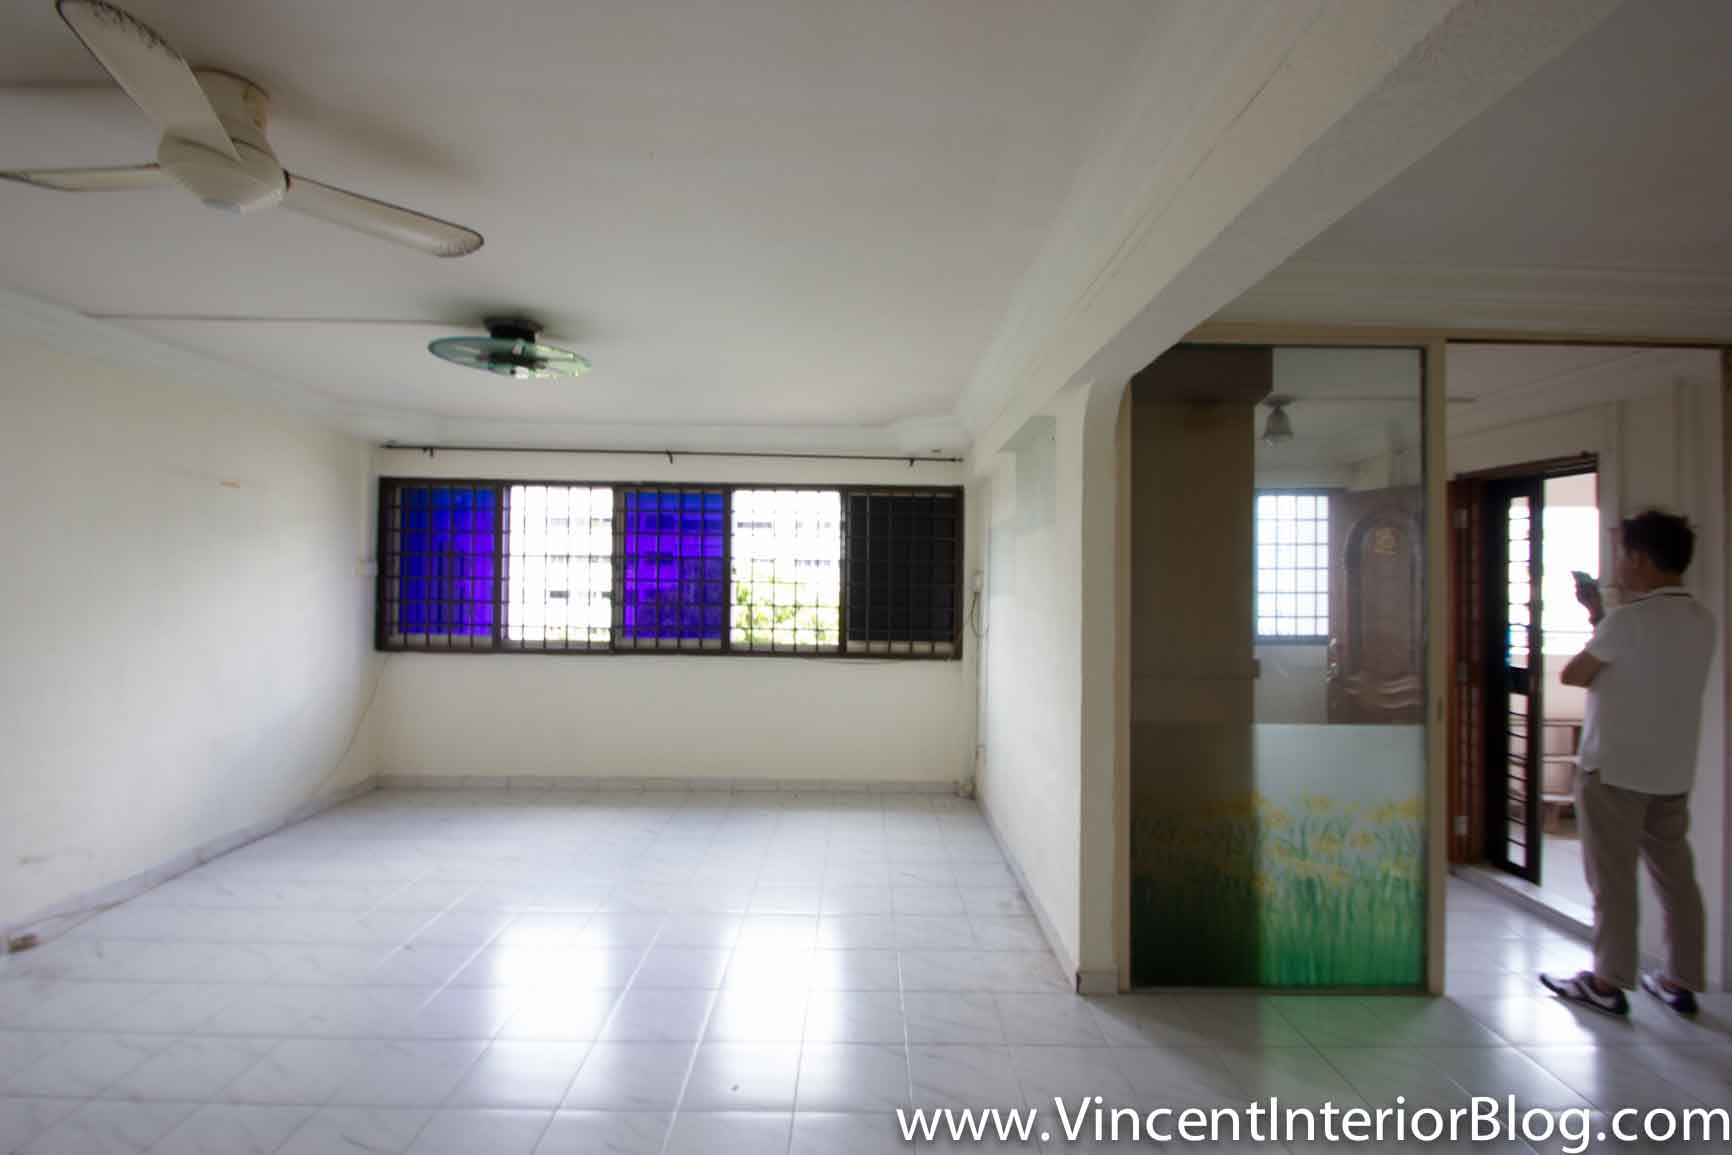 5 room hdb yishun living room 9 vincent interior blog for Interior design renovation